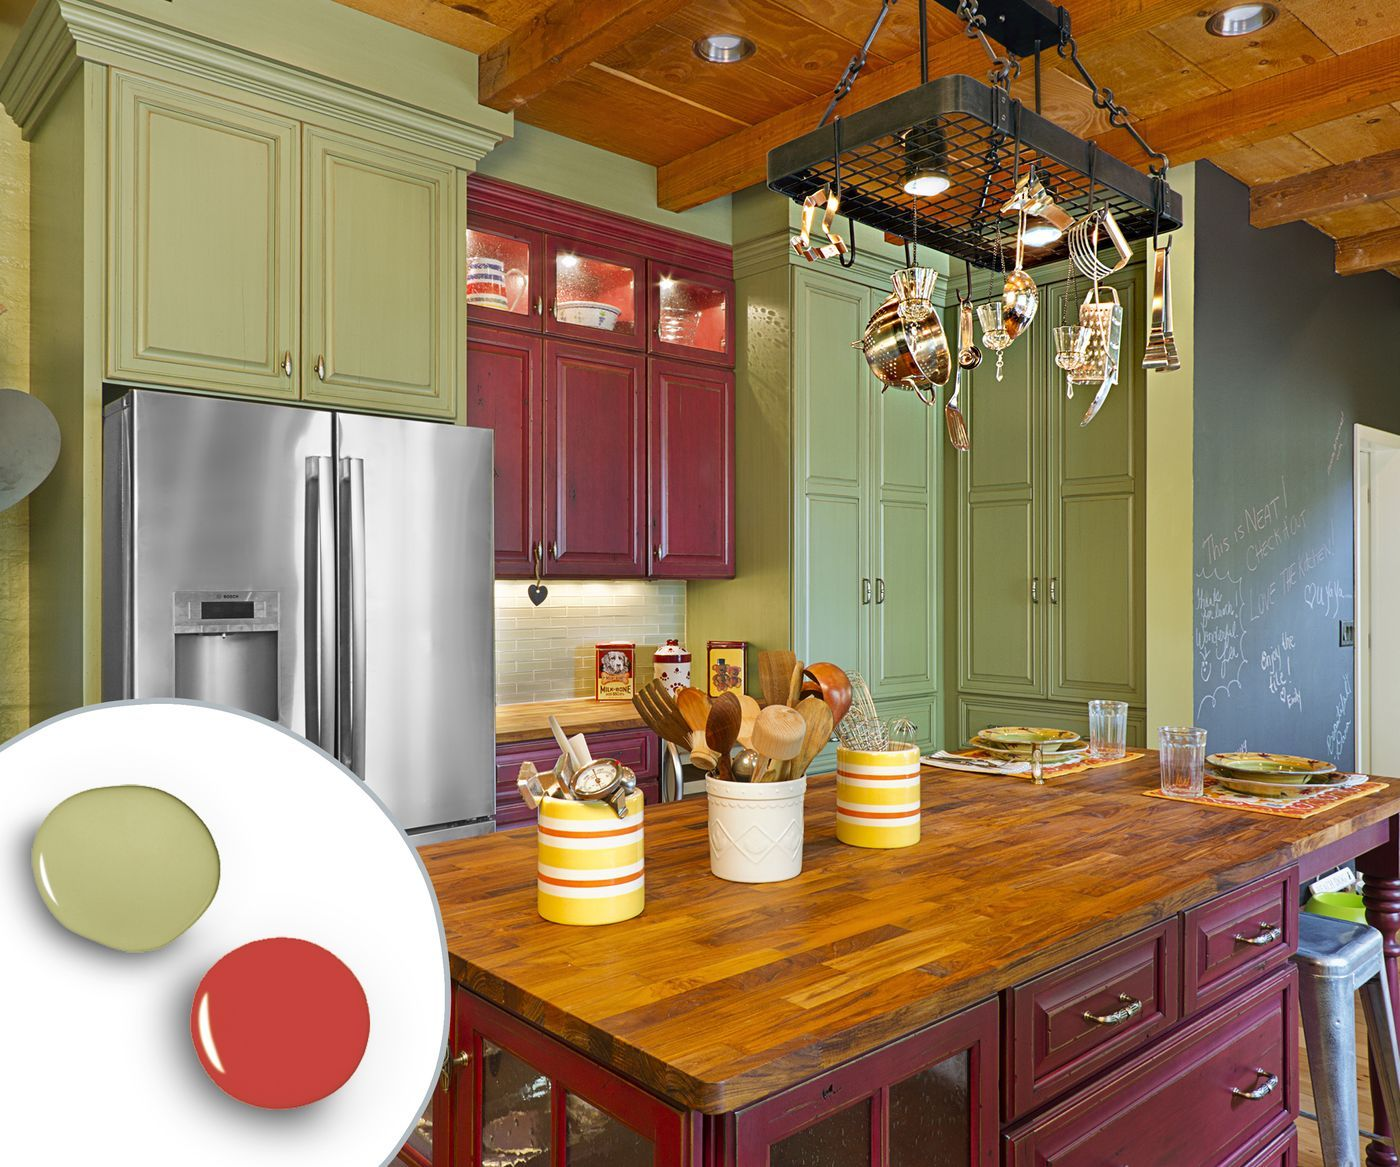 12 Kitchen Cabinet Color Combos That Really Cook In 2020 Kitchen Cabinets Color Combination Tuscan Kitchen Kitchen Cabinet Colors